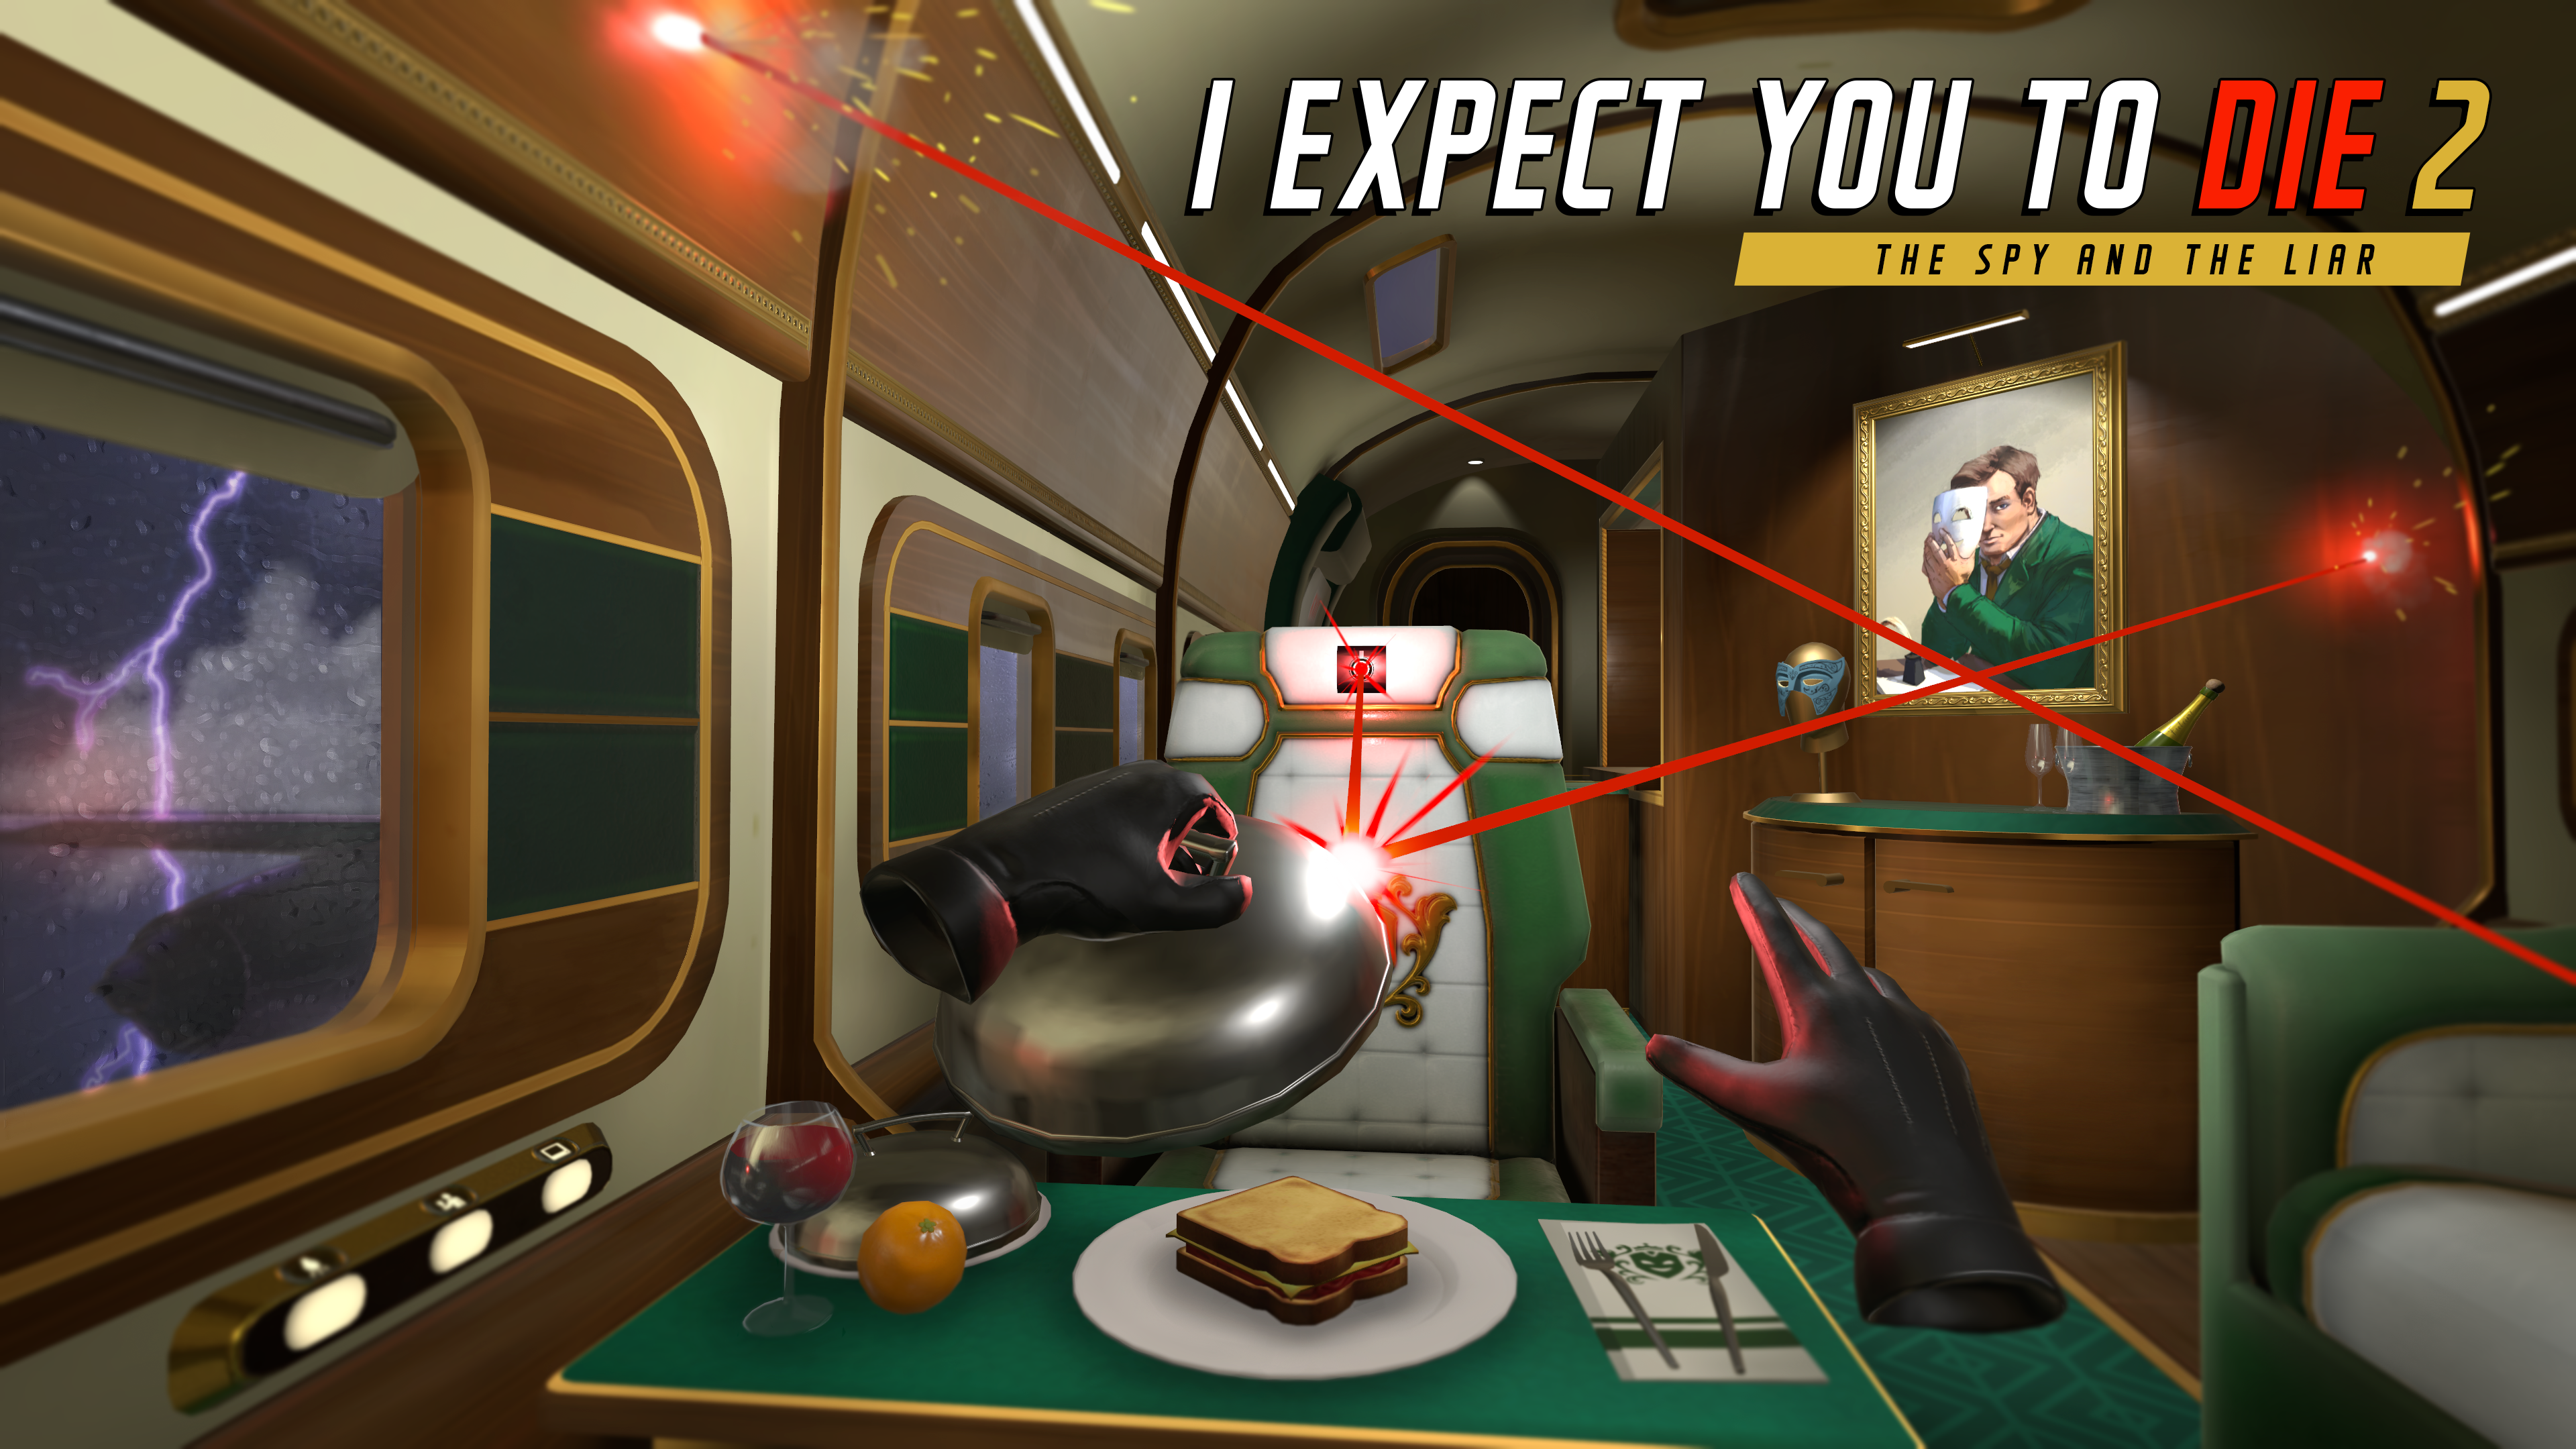 Schell Games Announces Sequel to Award-Winning VR Puzzler 'I Expect You To Die'